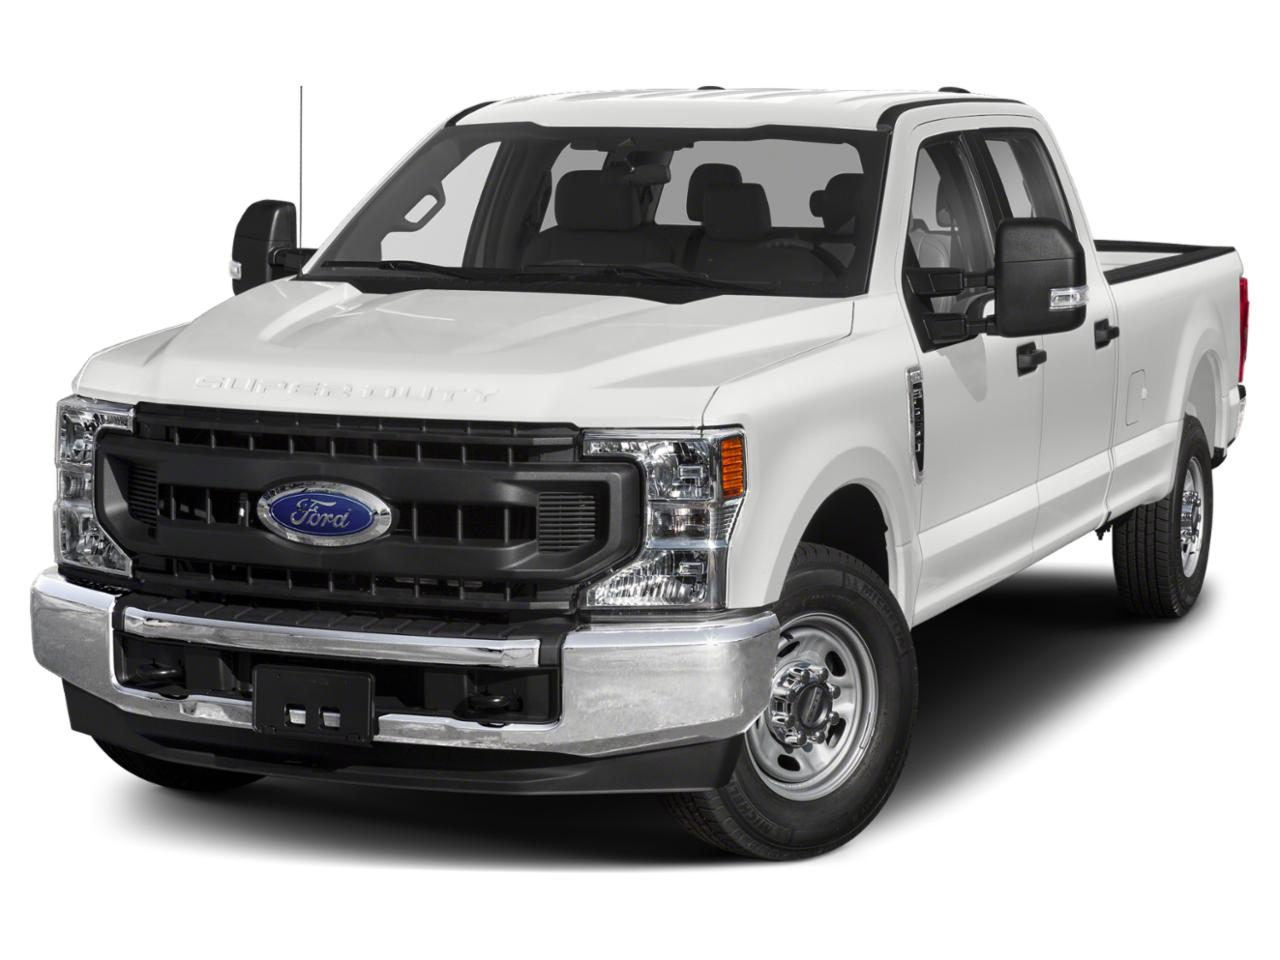 2022 Ford F-250 Groveport OH